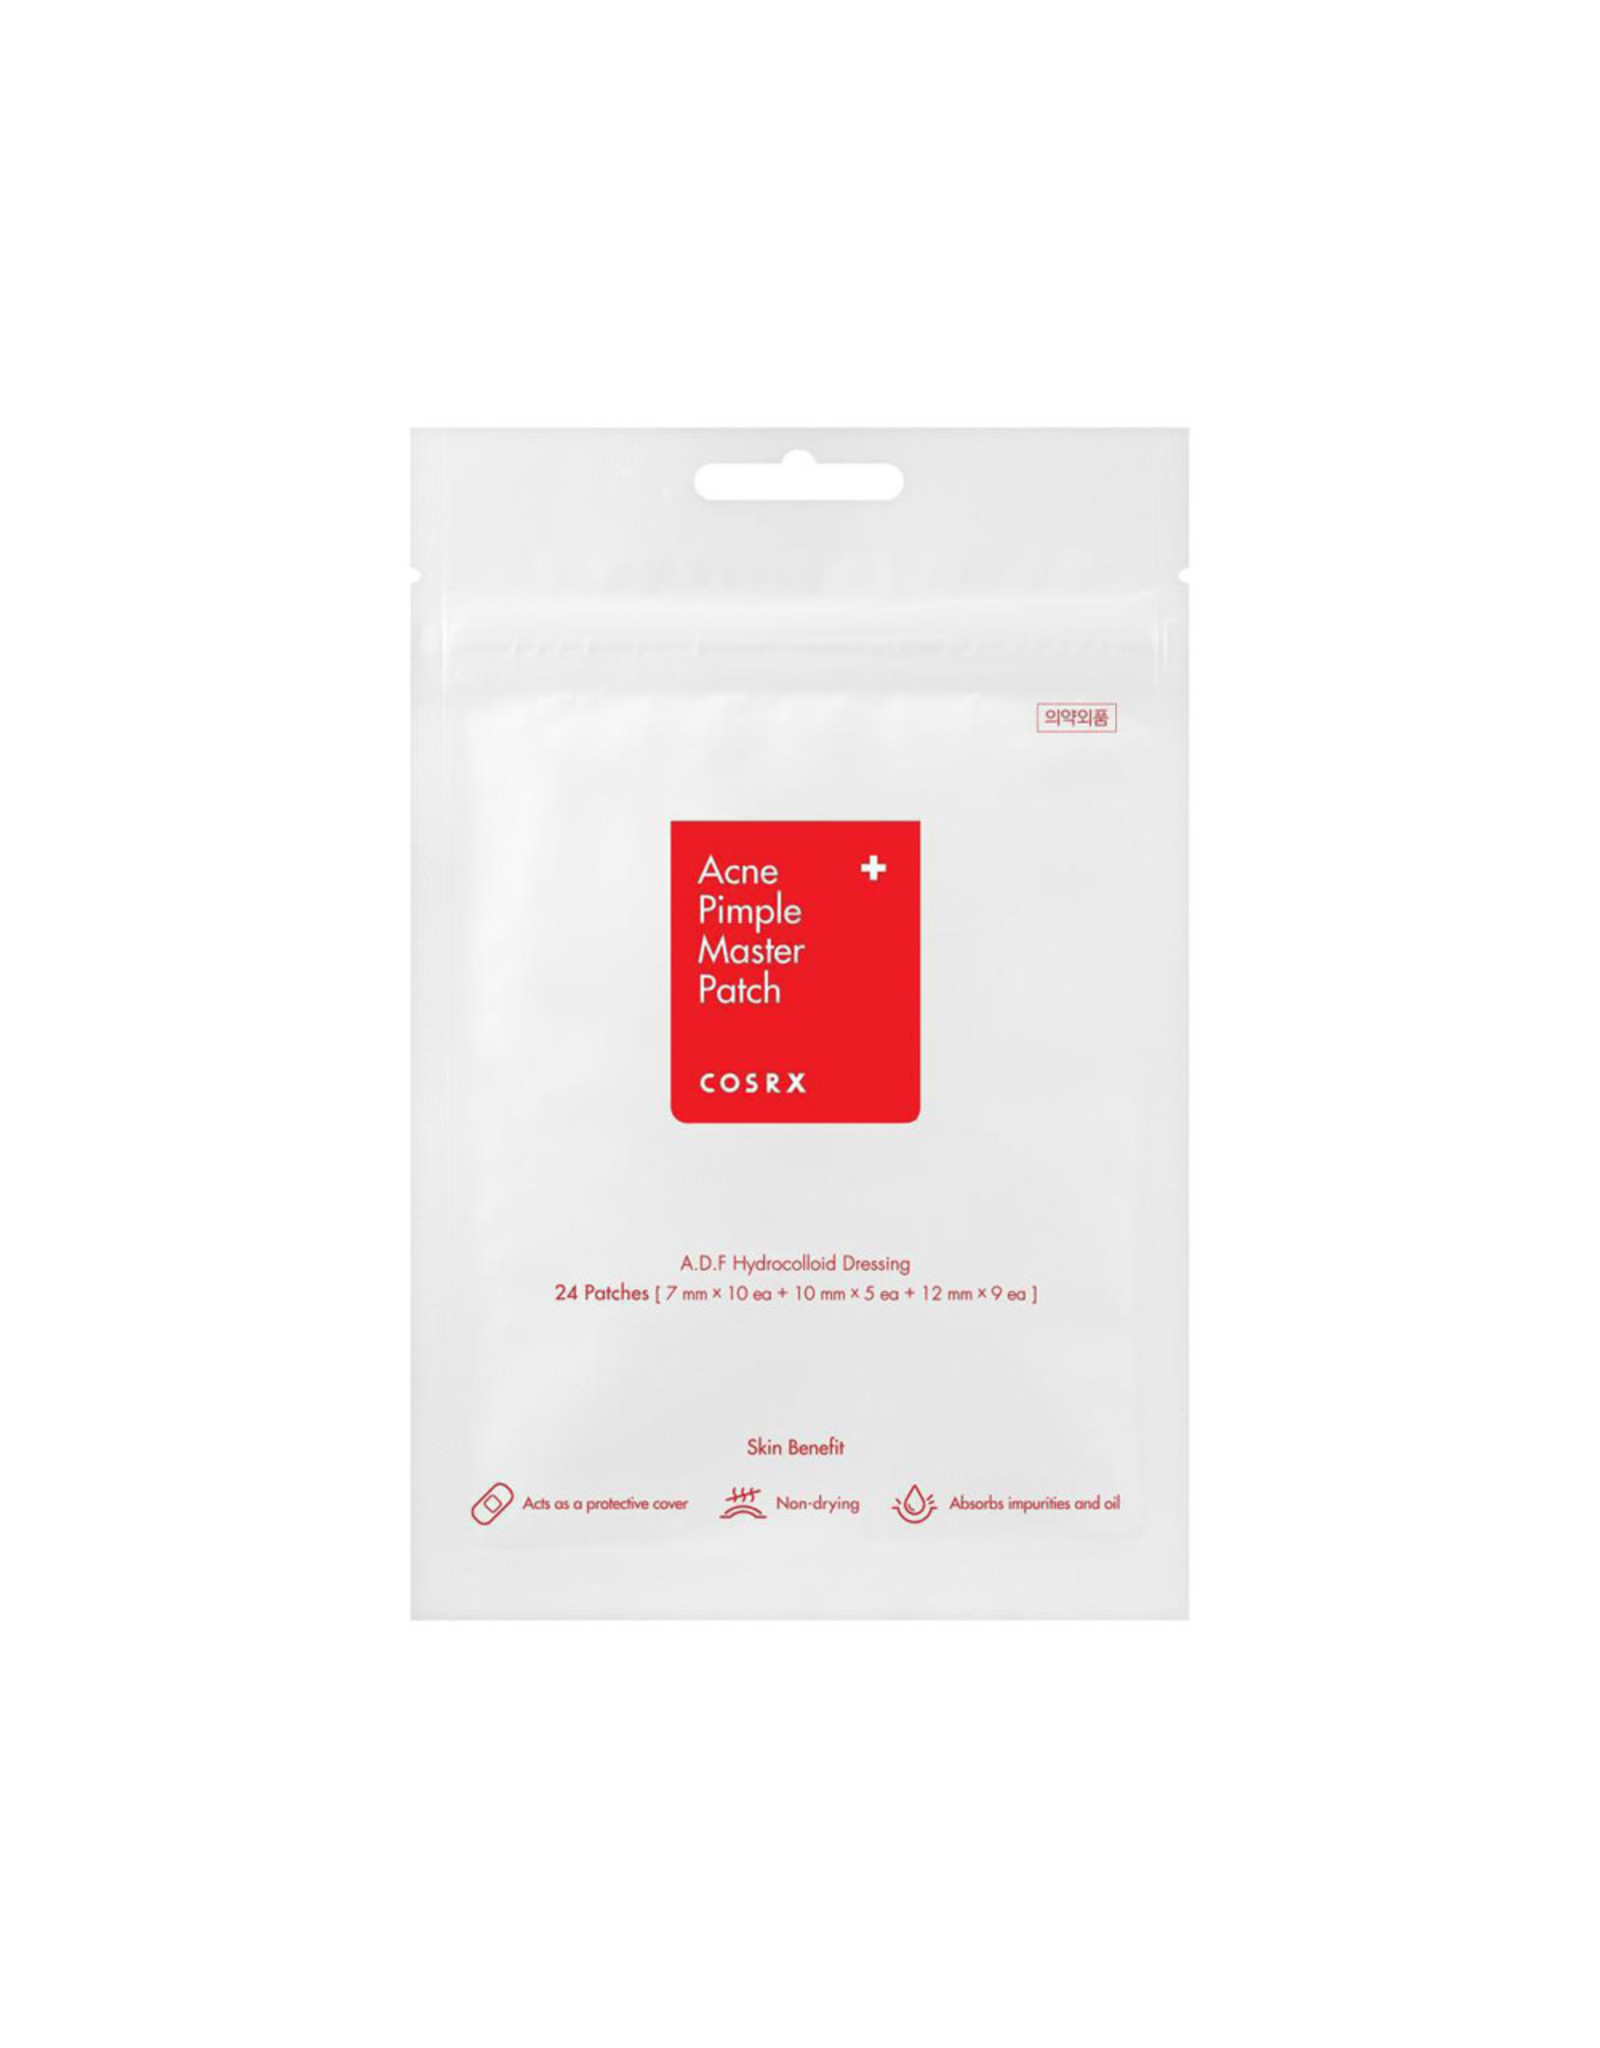 Cosrx Cosrx Acne Pimple Master Patch Red